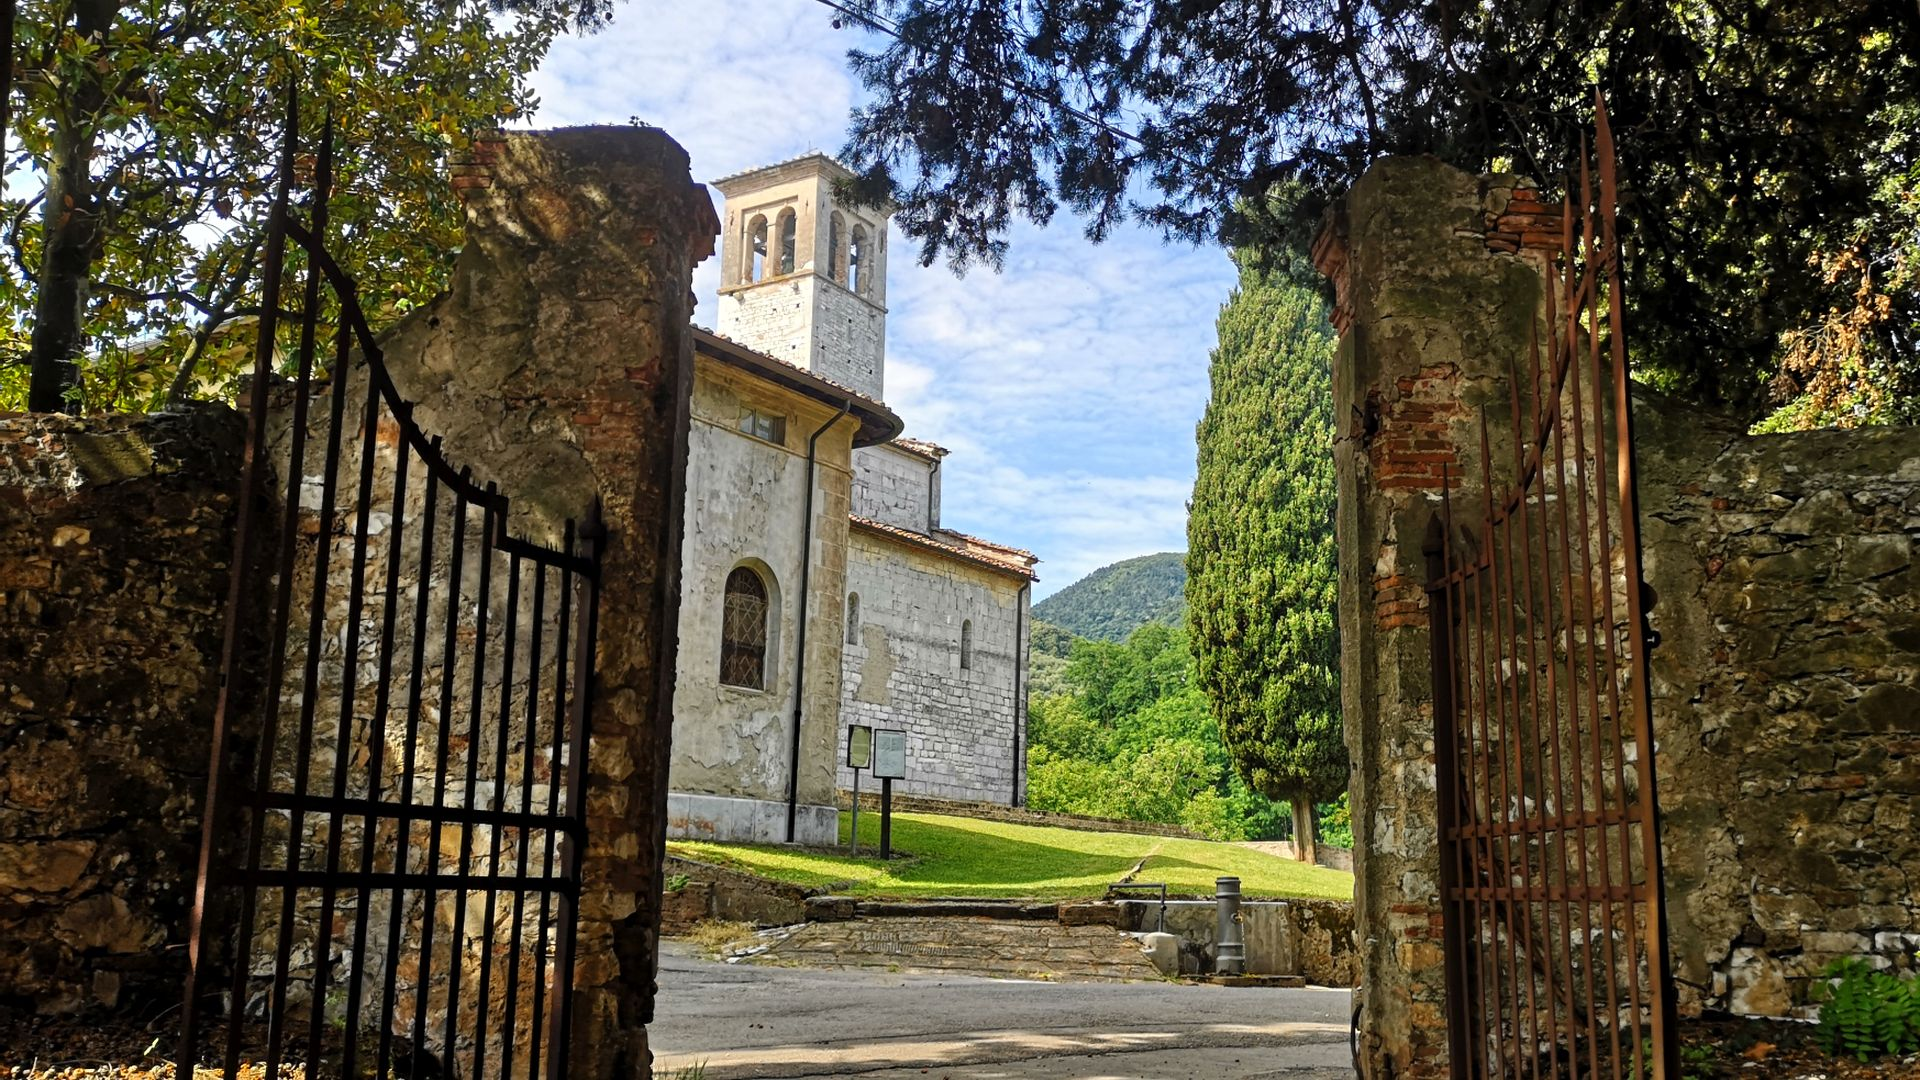 a walk to the parish church of Gattaiola